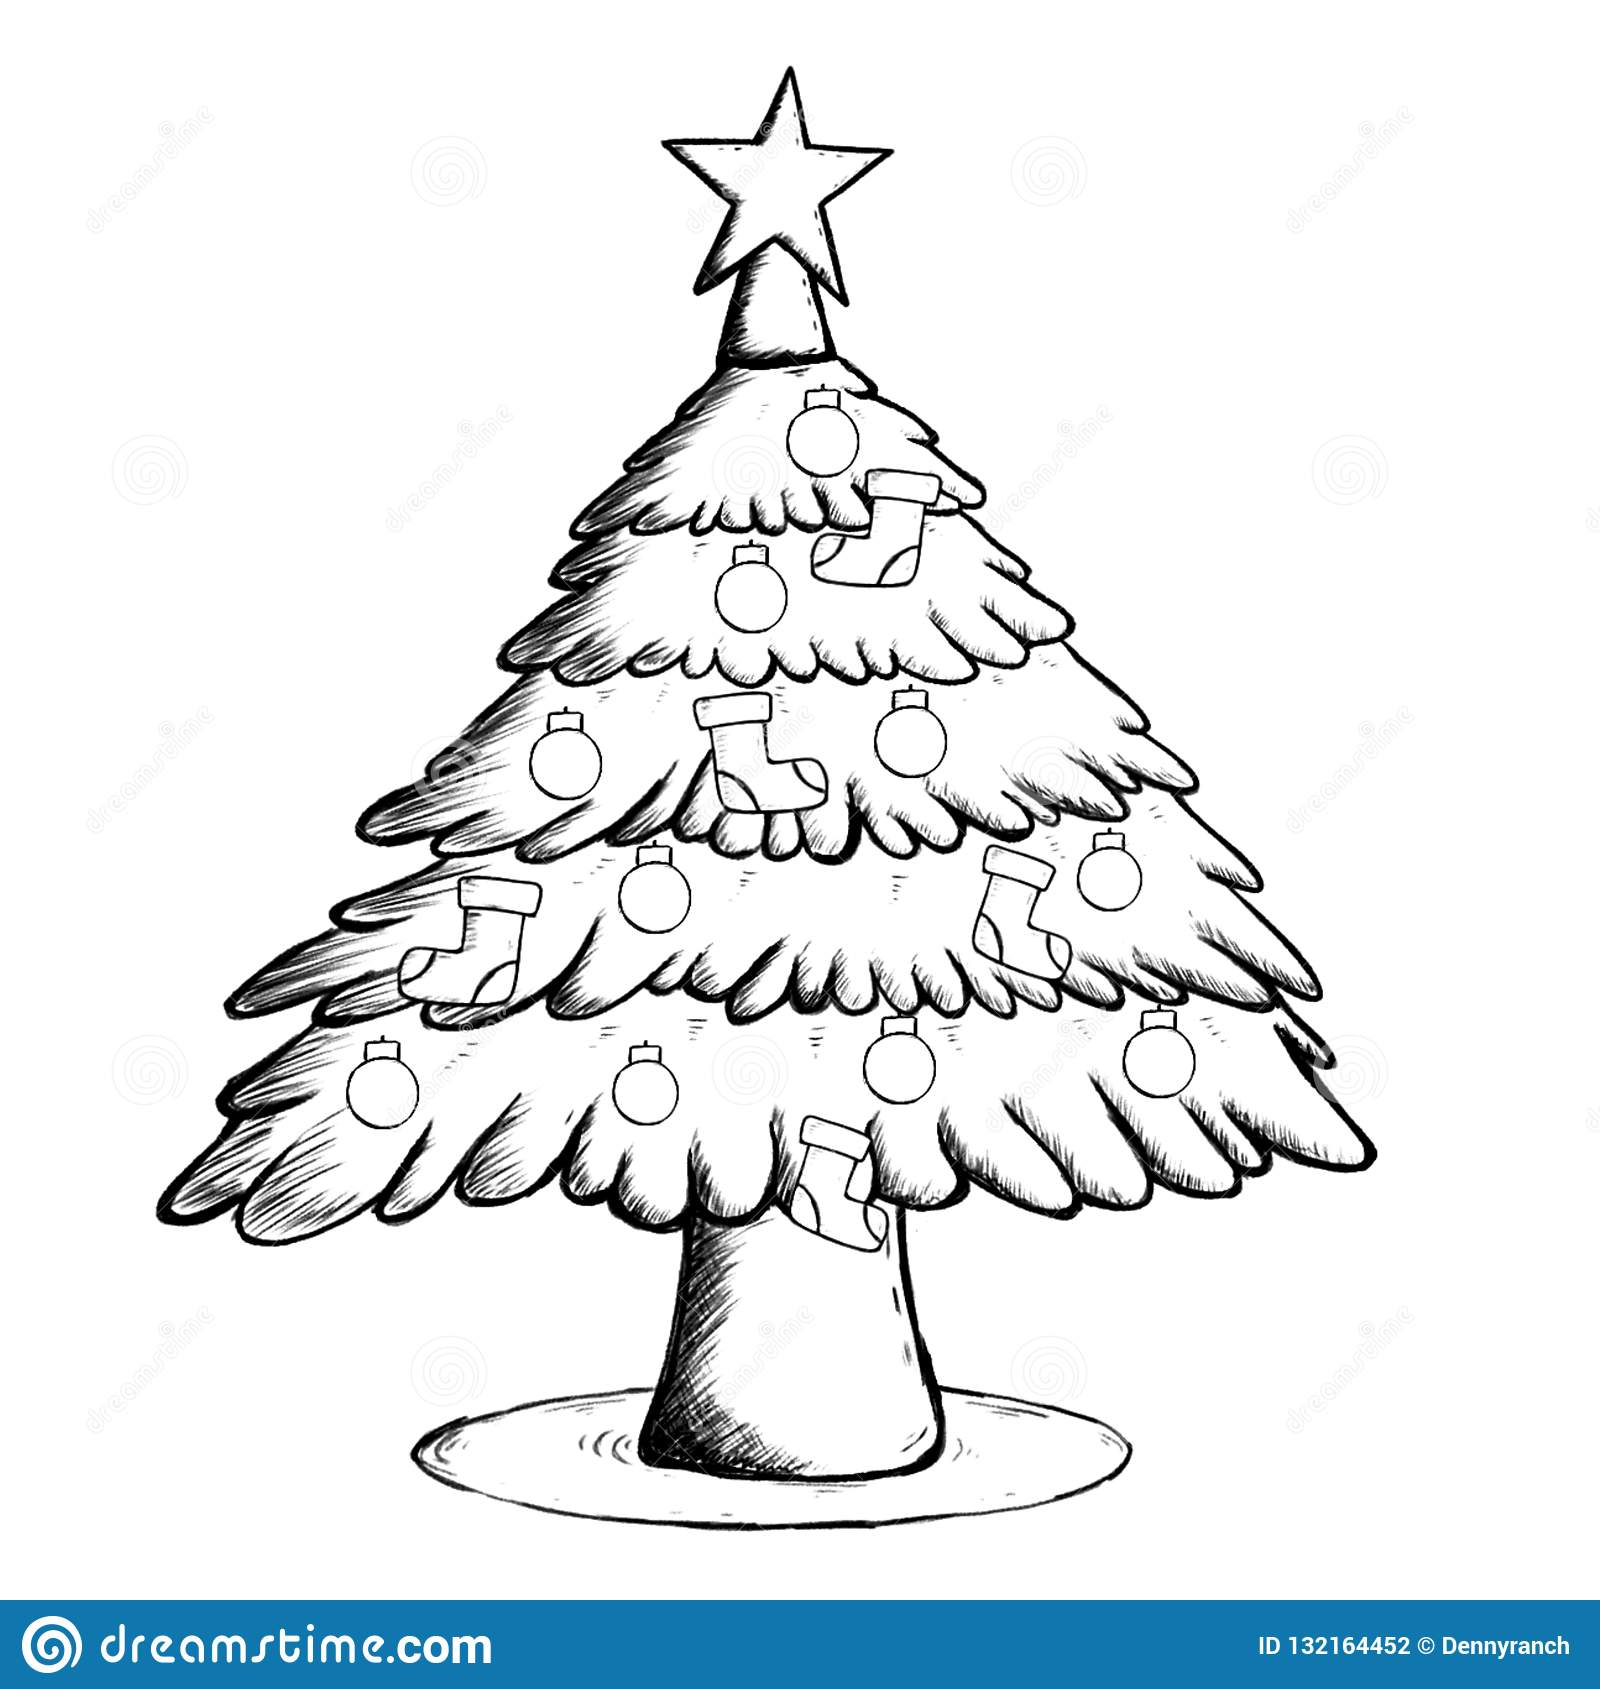 Christmas Tree Coloring Pictures.Christmas Tree Coloring Page Stock Illustration